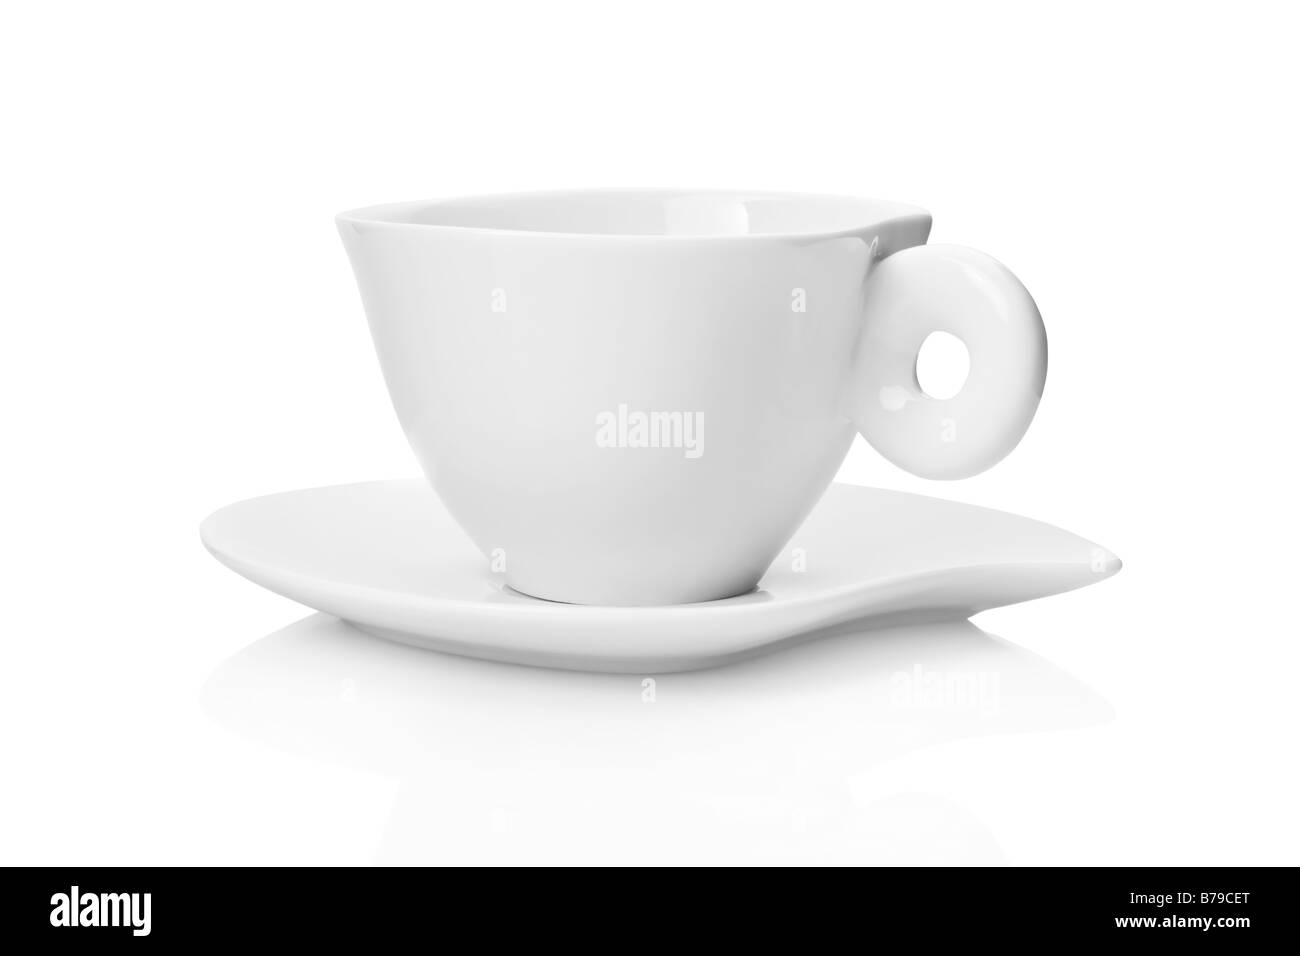 White tea cup and saucer isolated on white background - Stock Image